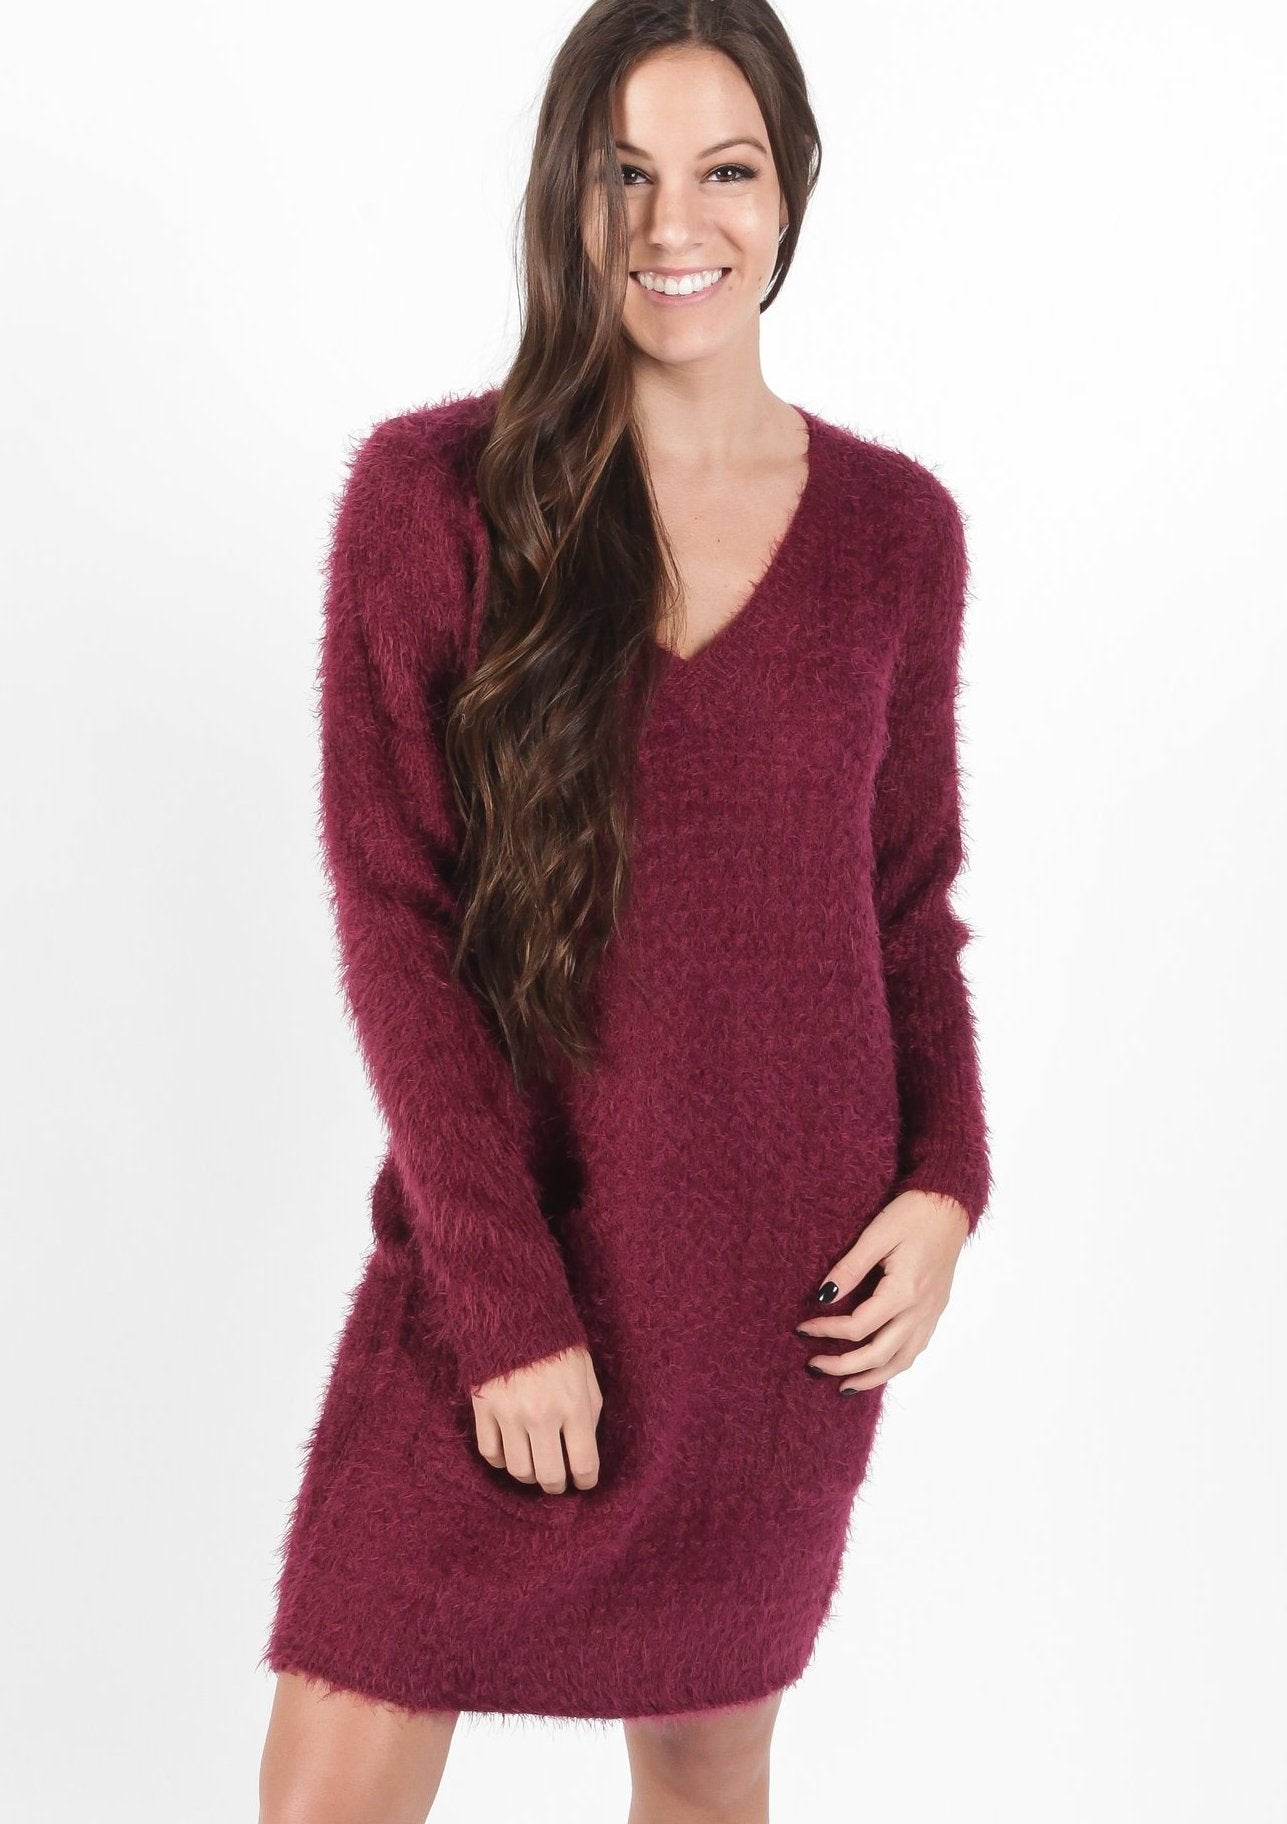 Nova Sweater Dress - Plum Dresses - Vinnie Louise